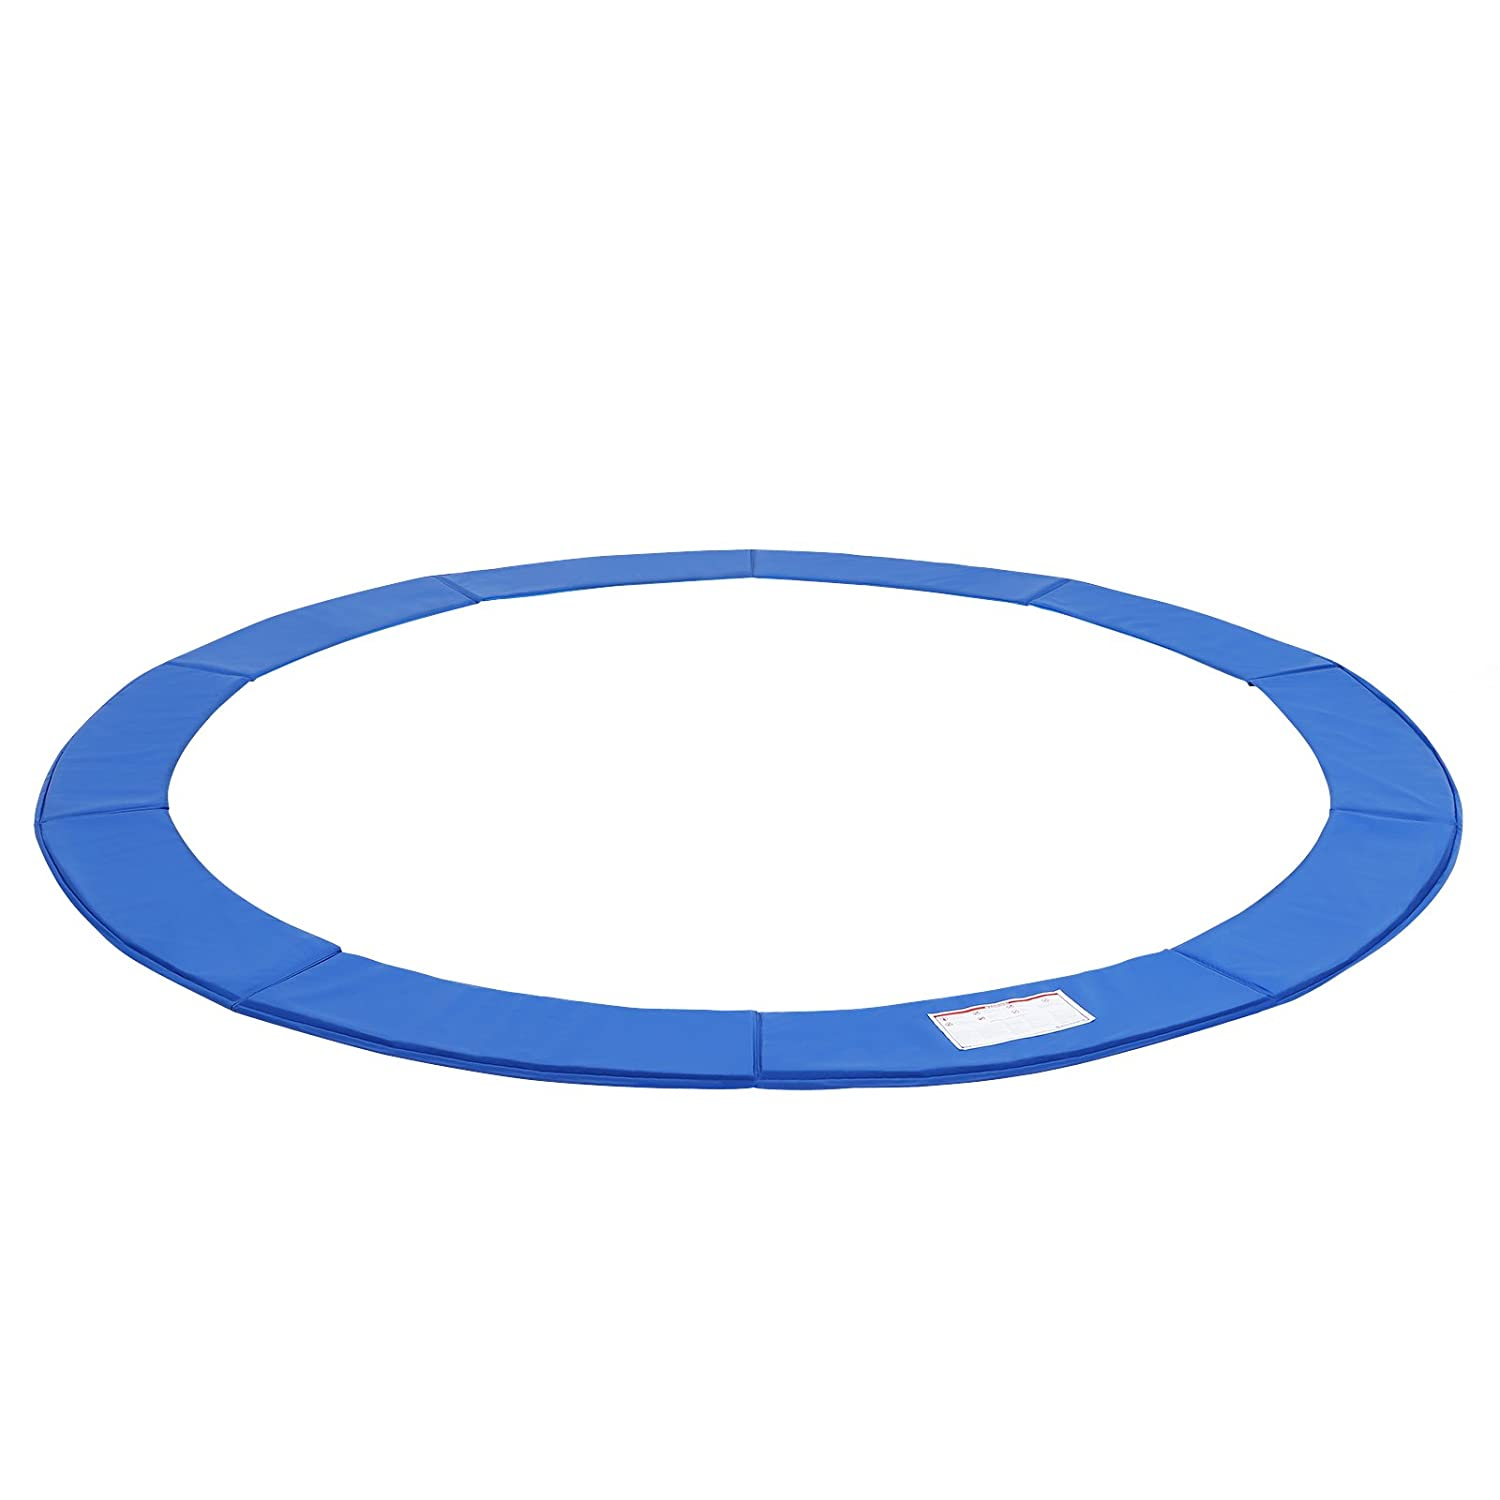 Ferty 10 12 14 15ft Trampoline Pad Waterproof Replacement: Pads : Online Shopping For Clothing, Shoes, Jewelry, Pet